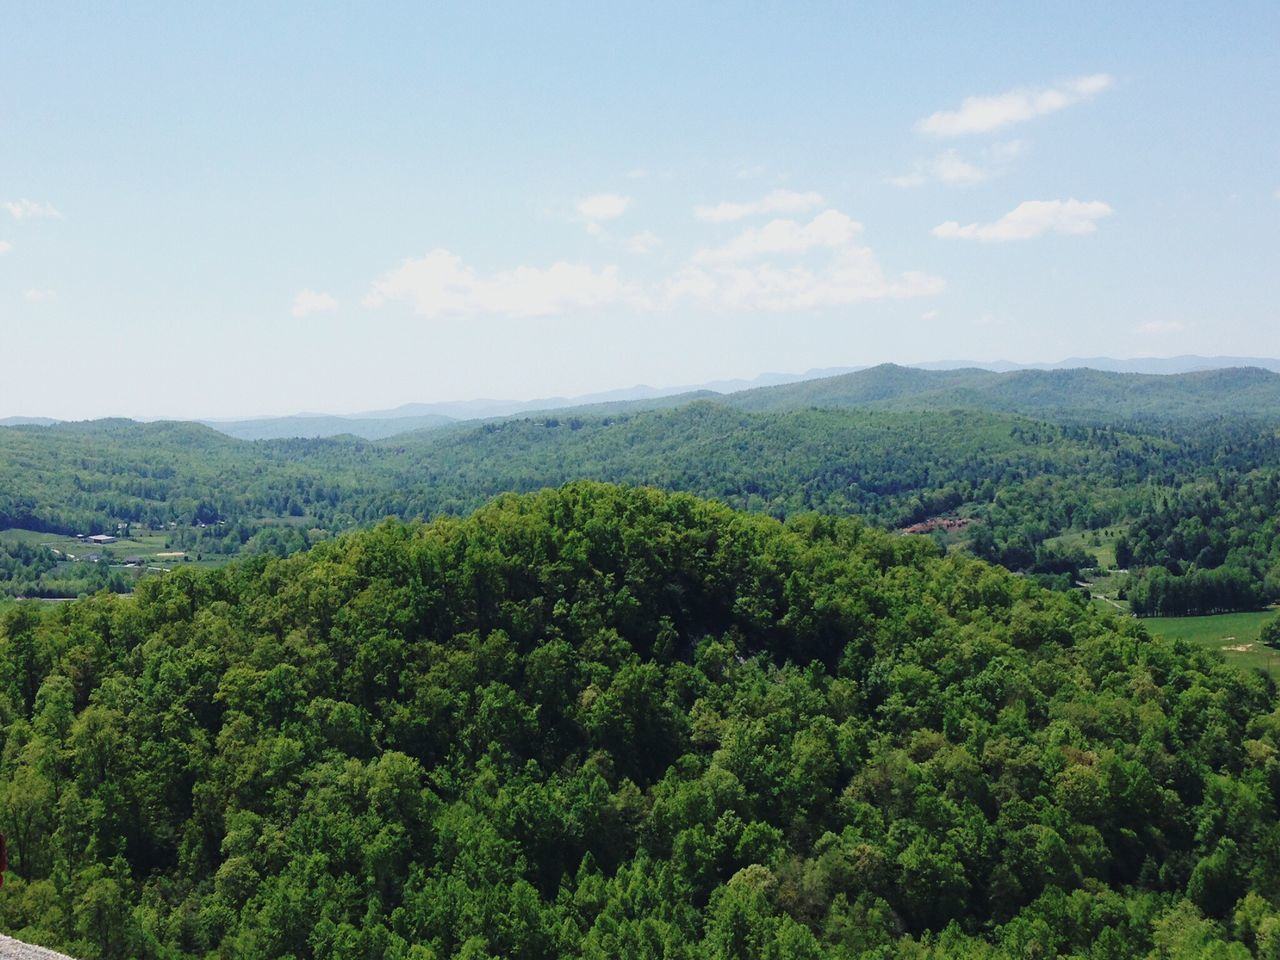 Blue Ridge Mountains Wnc Mountains Treetops Forest Hiking Nature Green Scenery Perfect Day